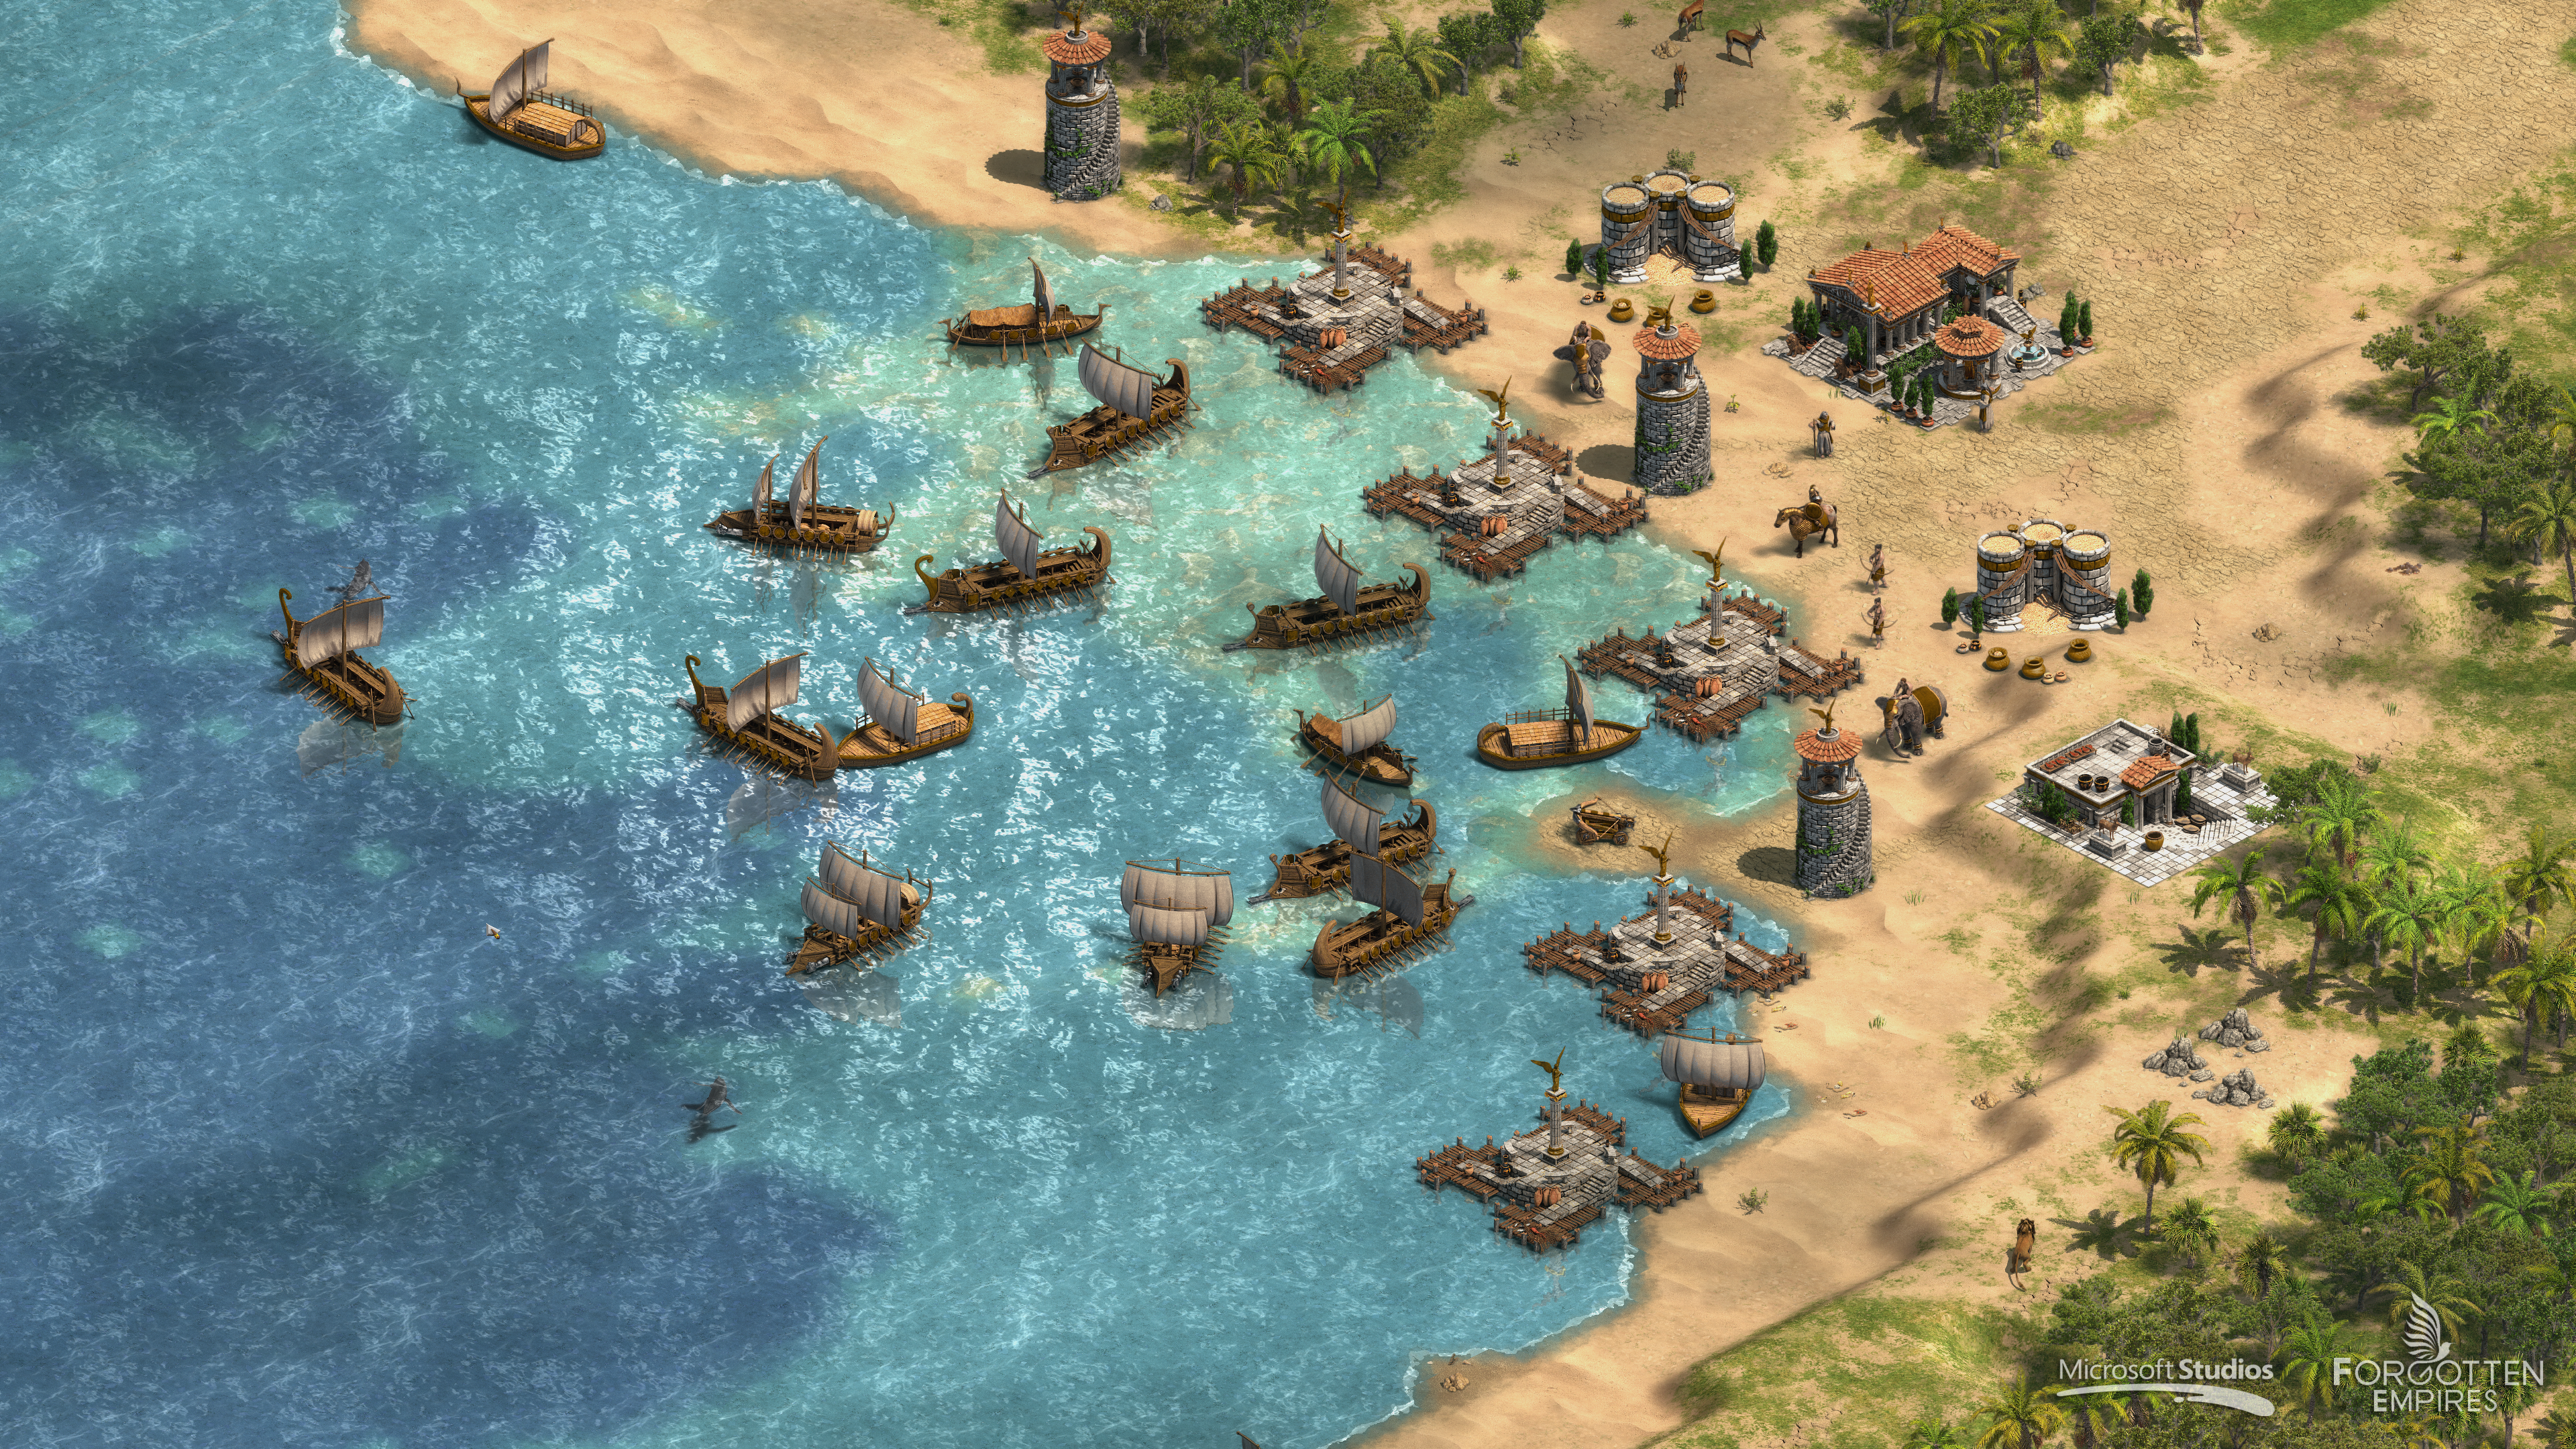 http://www.forgottenempires.net/wp-content/uploads/age_of_empires_definitive_edition_screenshot_phoenician_harbour_.png